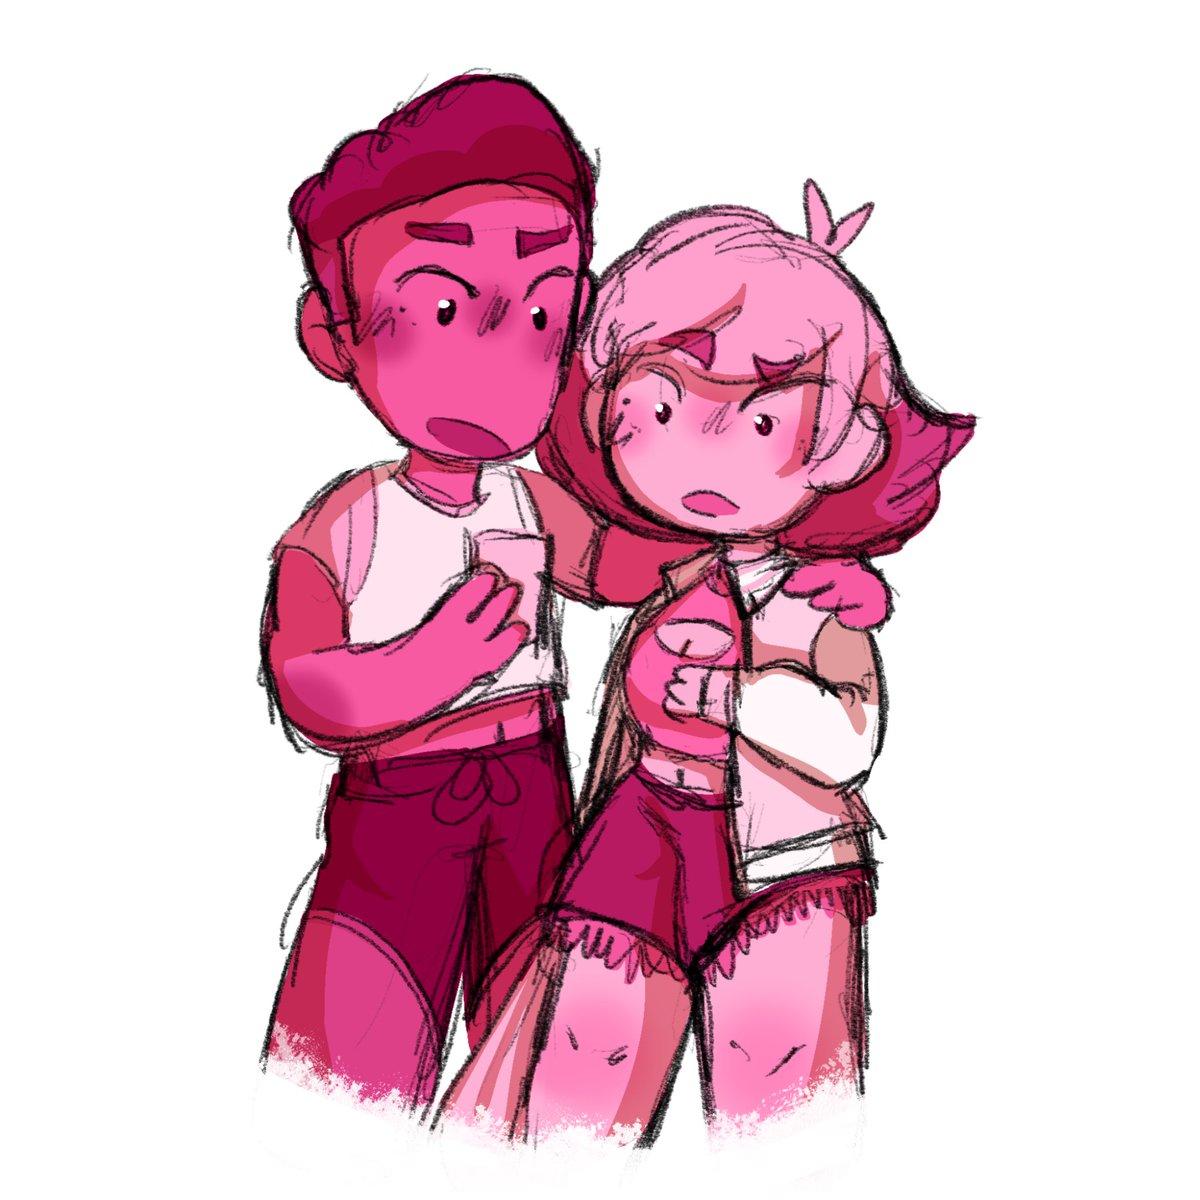 What are they looking at? 🤔  #glimbow #art #drawing #shera #fanart